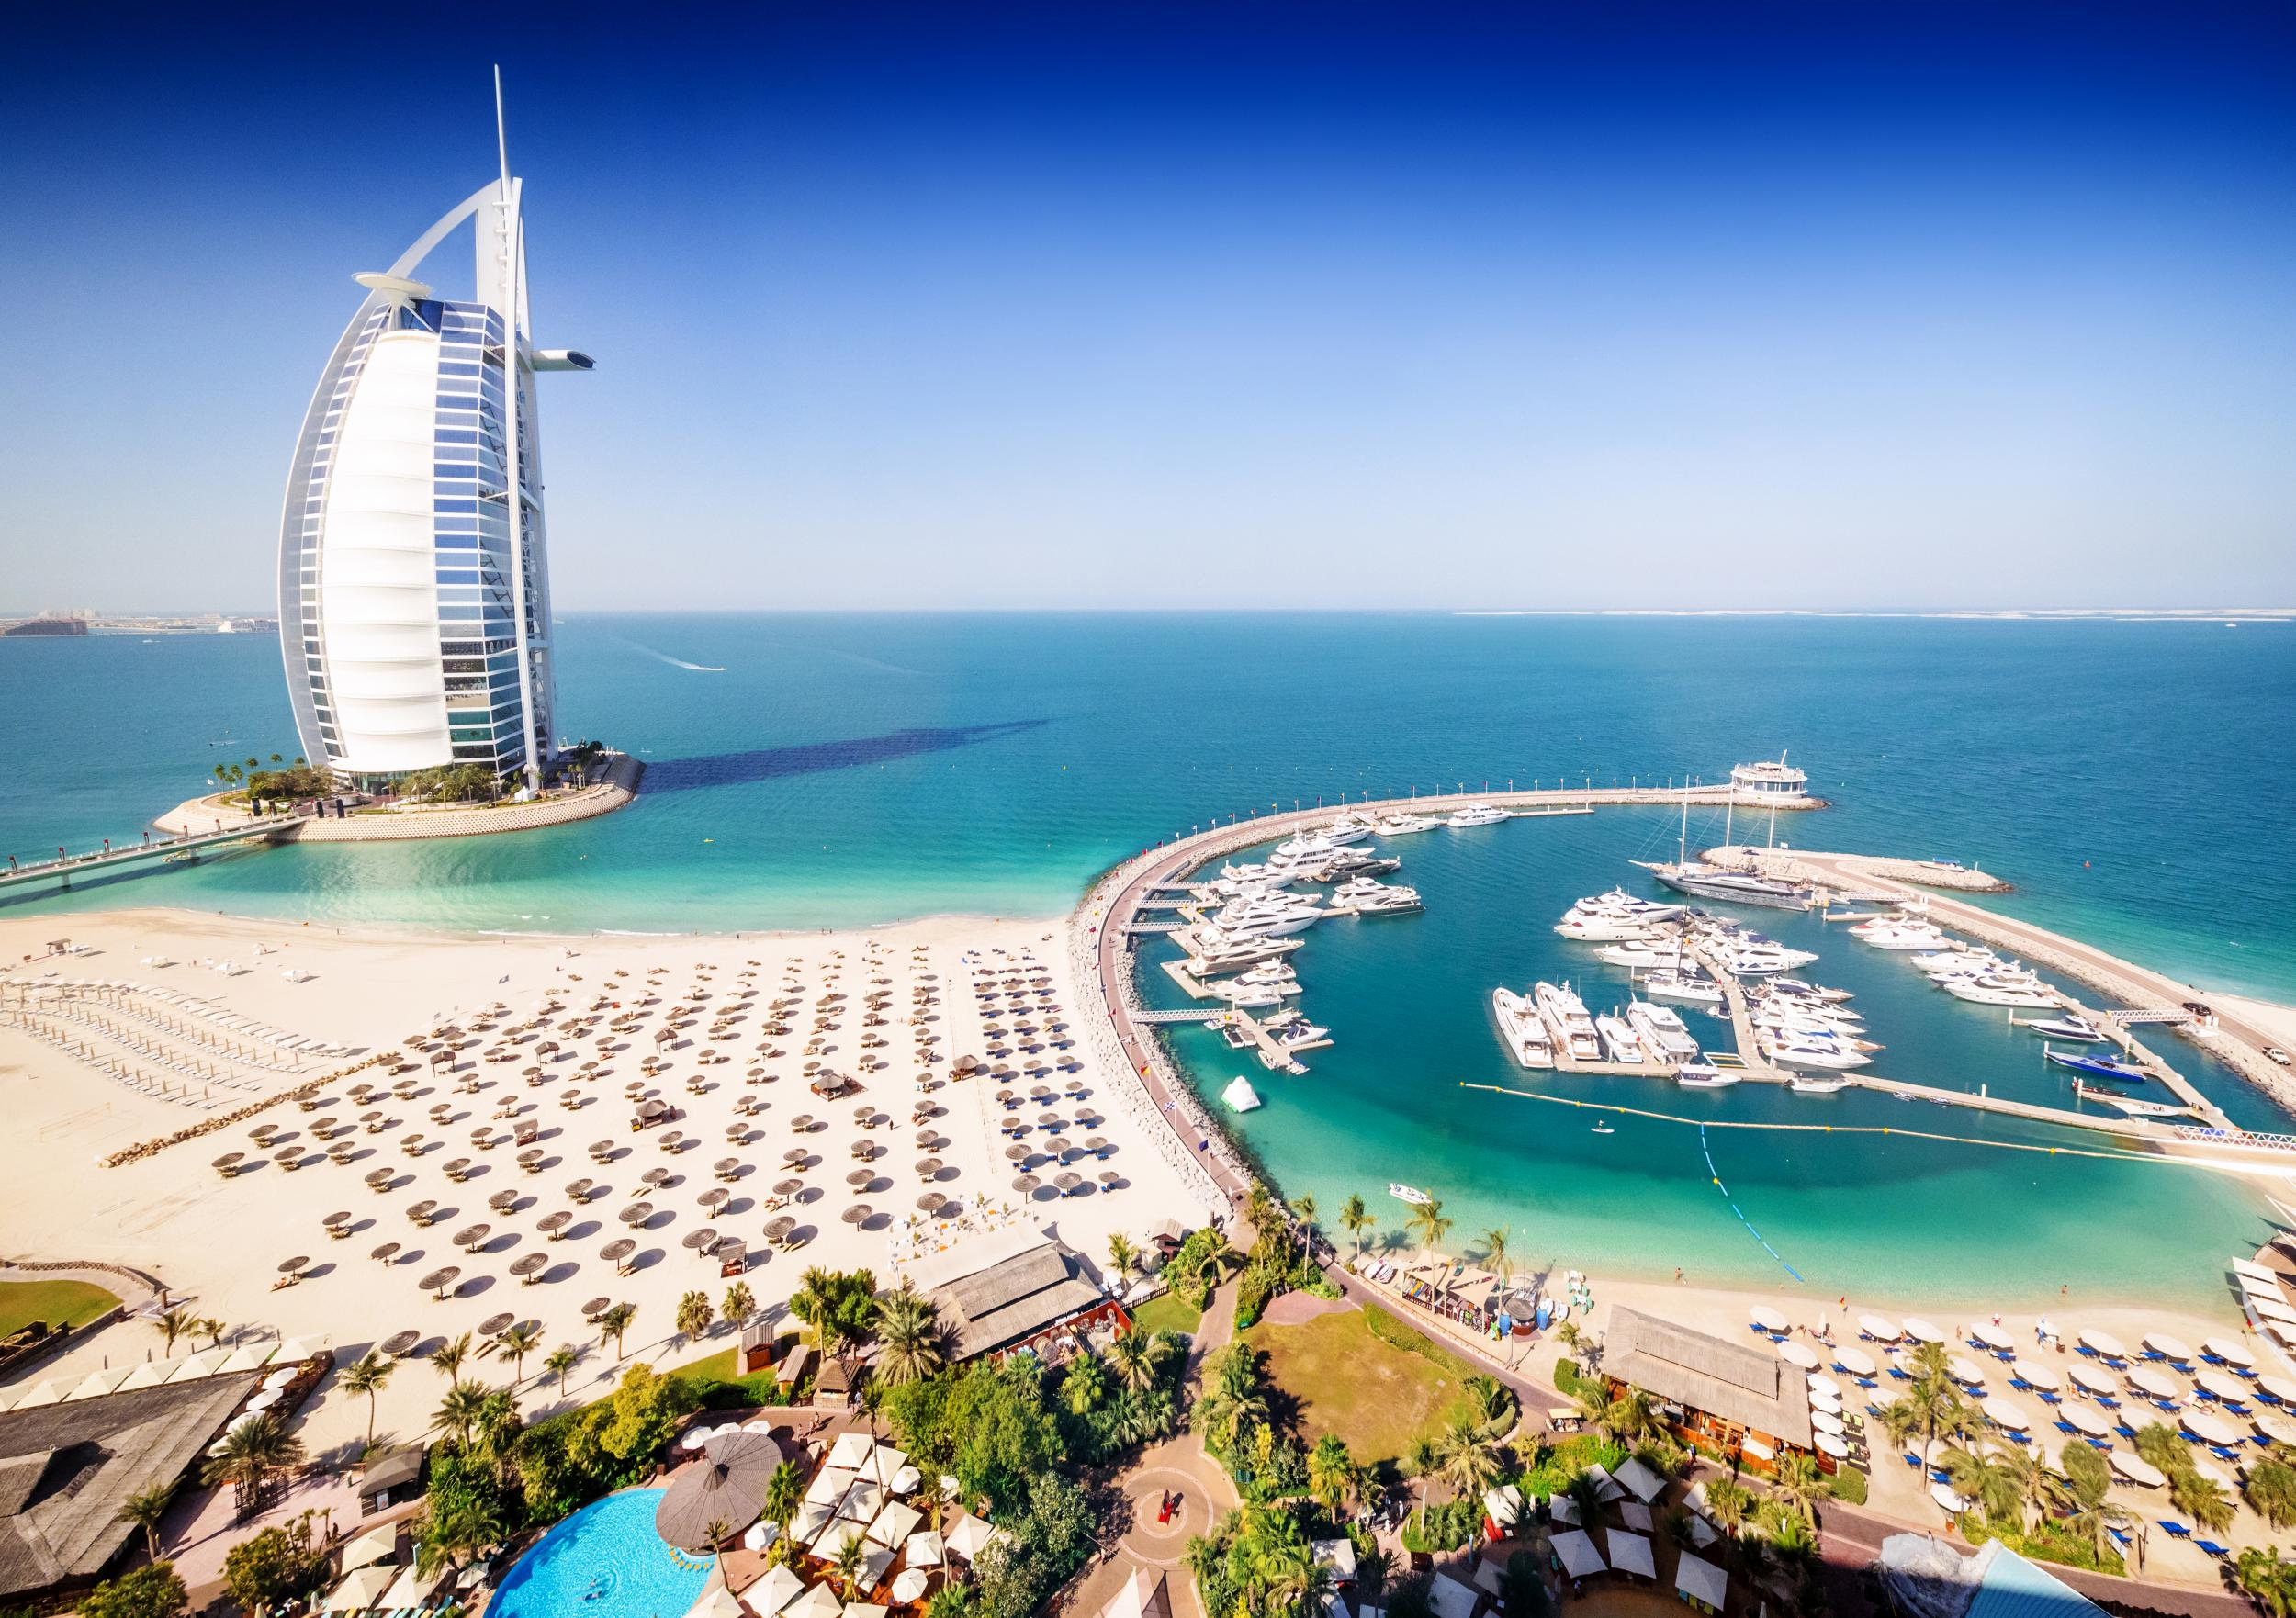 Dubai Hotels 10 Of The Best Places To Stay The Independent The Independent